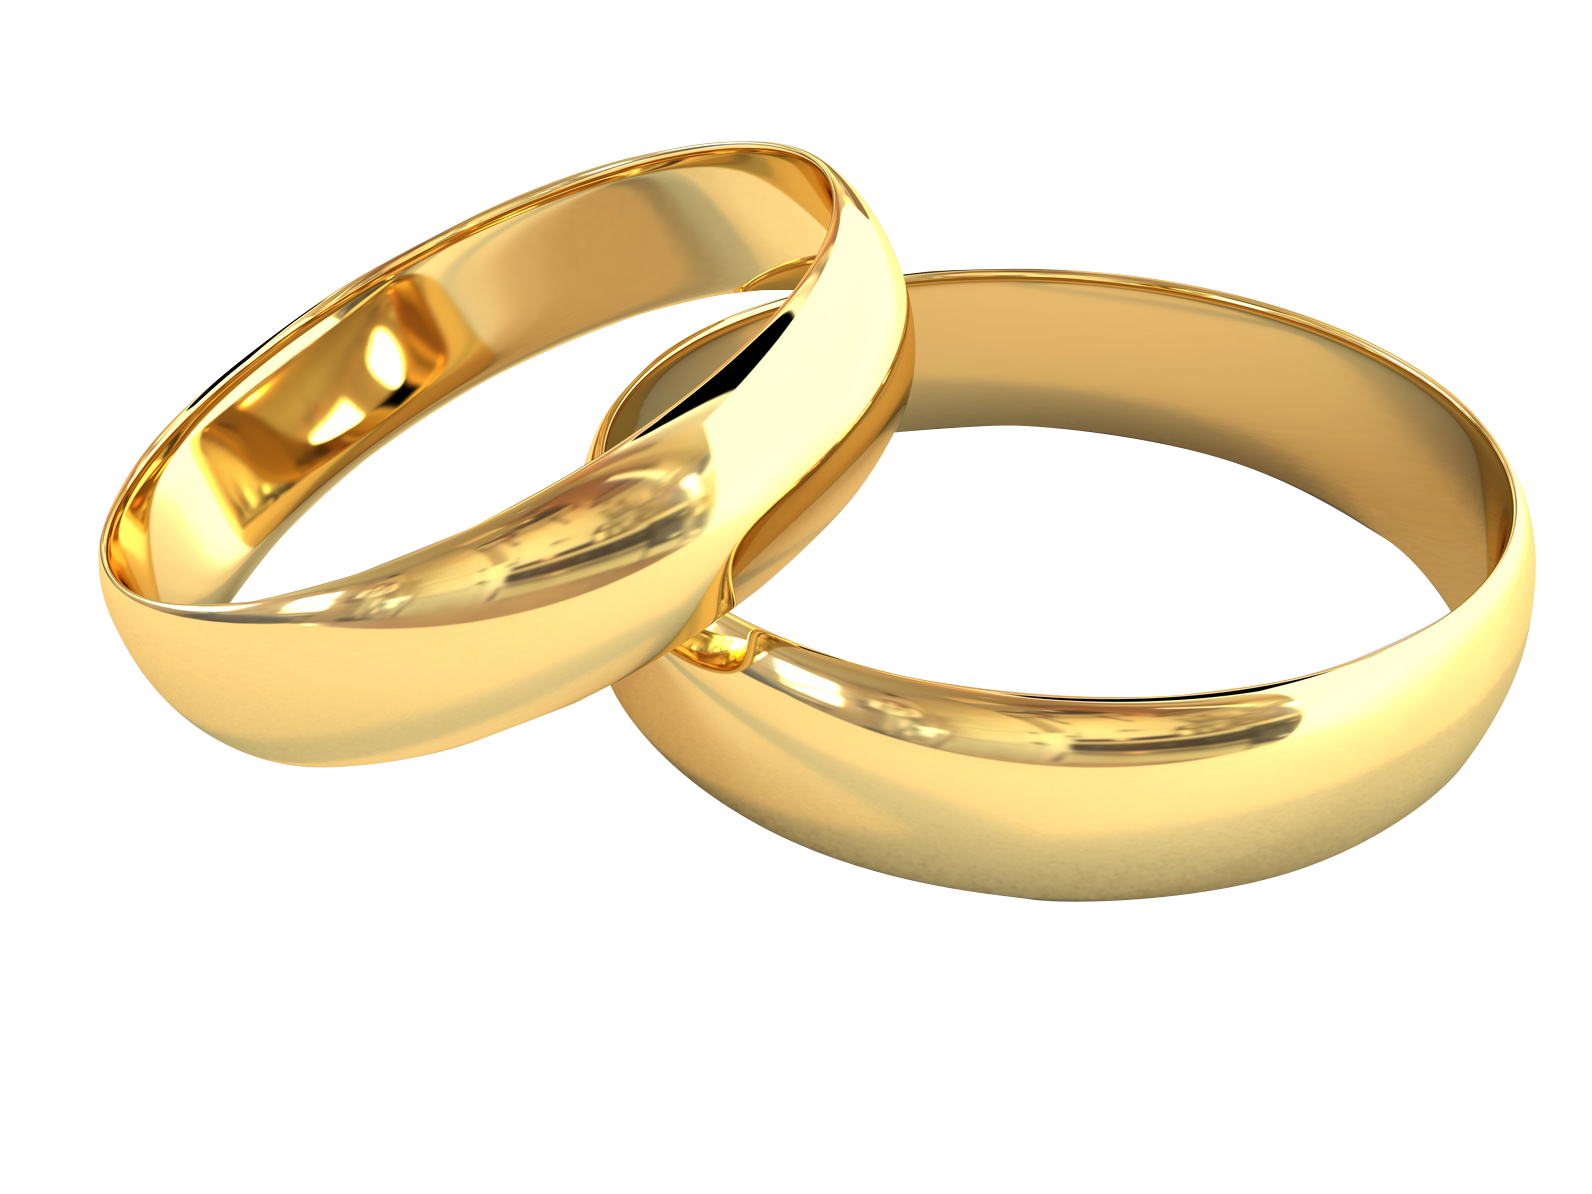 Wedding png images free. Wheat clipart ring